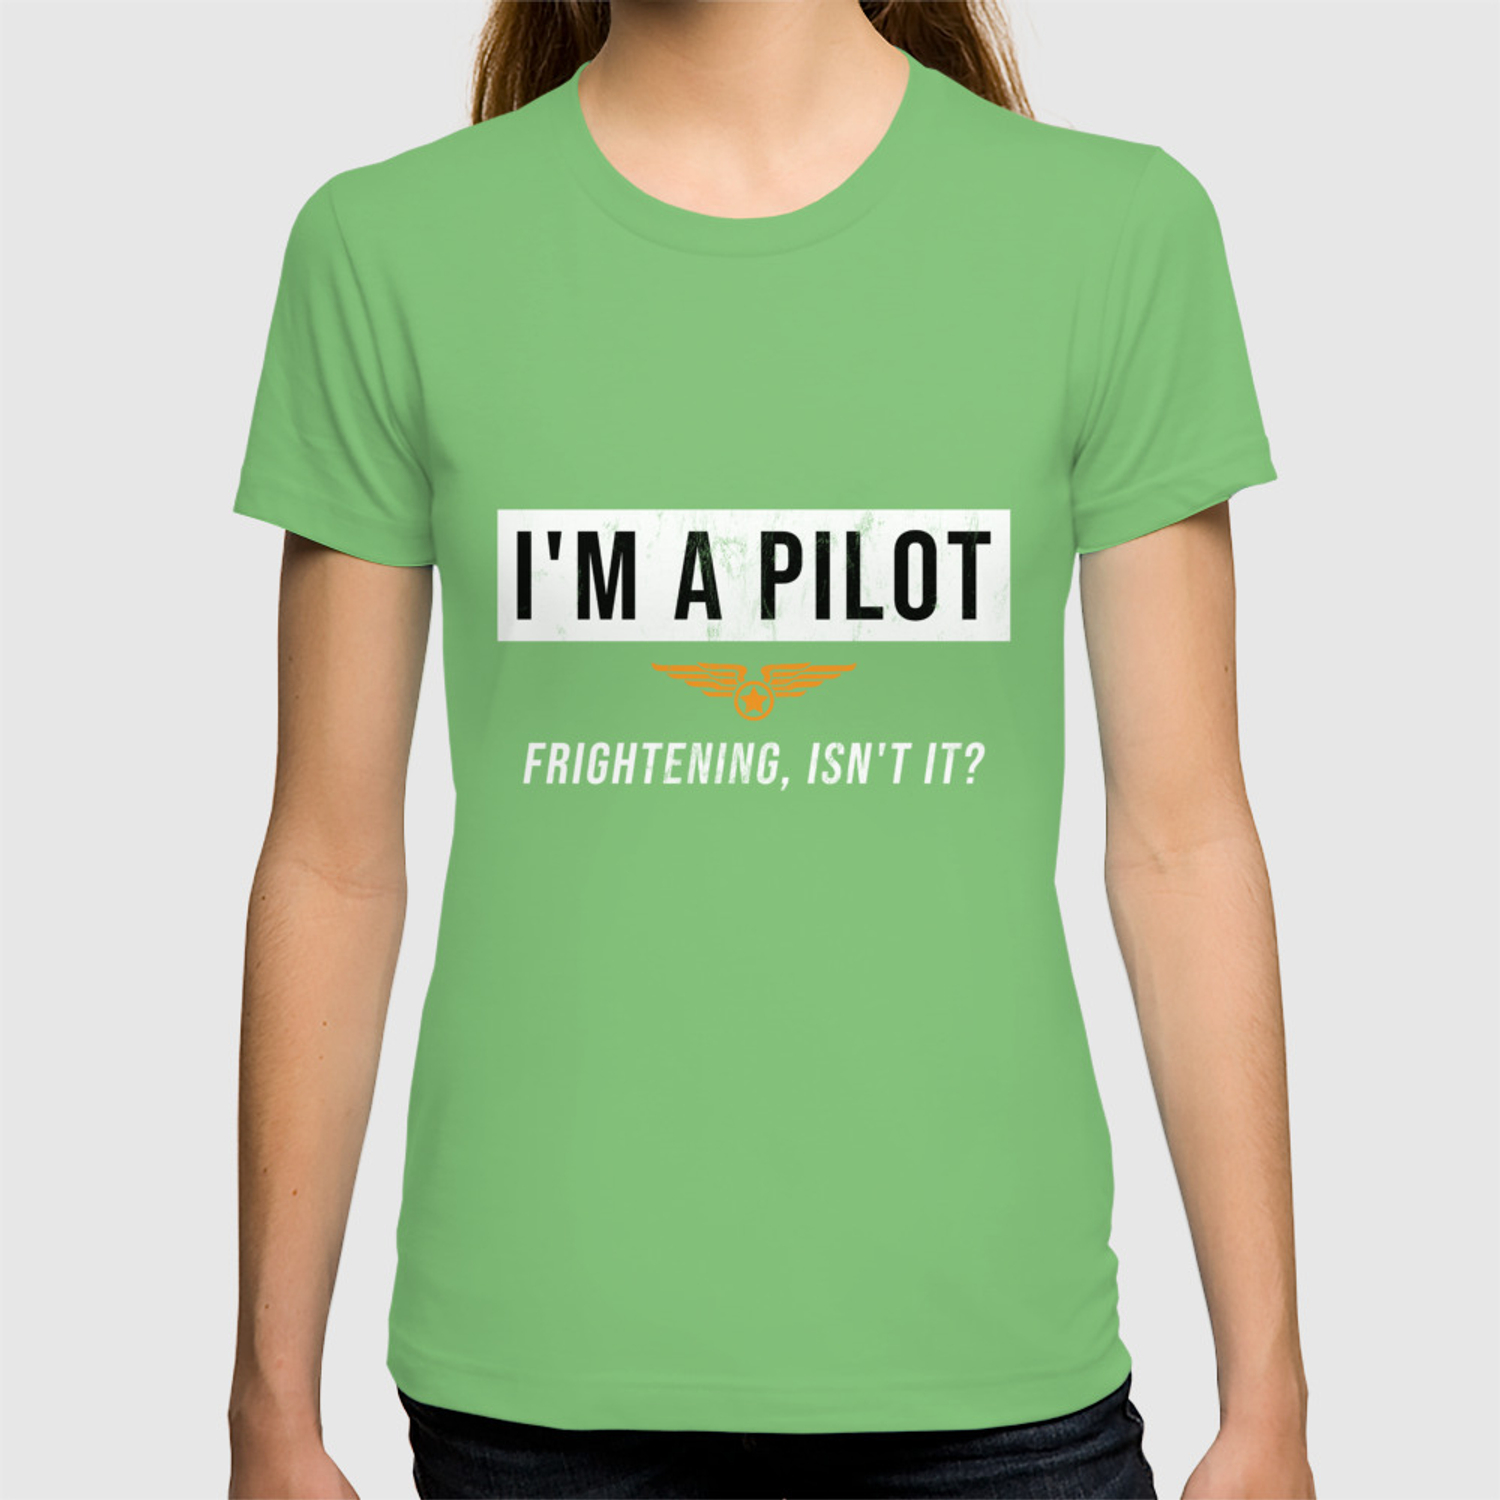 online store 1d782 0dcb5 I'm A Pilot Frightening, Isn't It? TShirt Distressed T-shirt